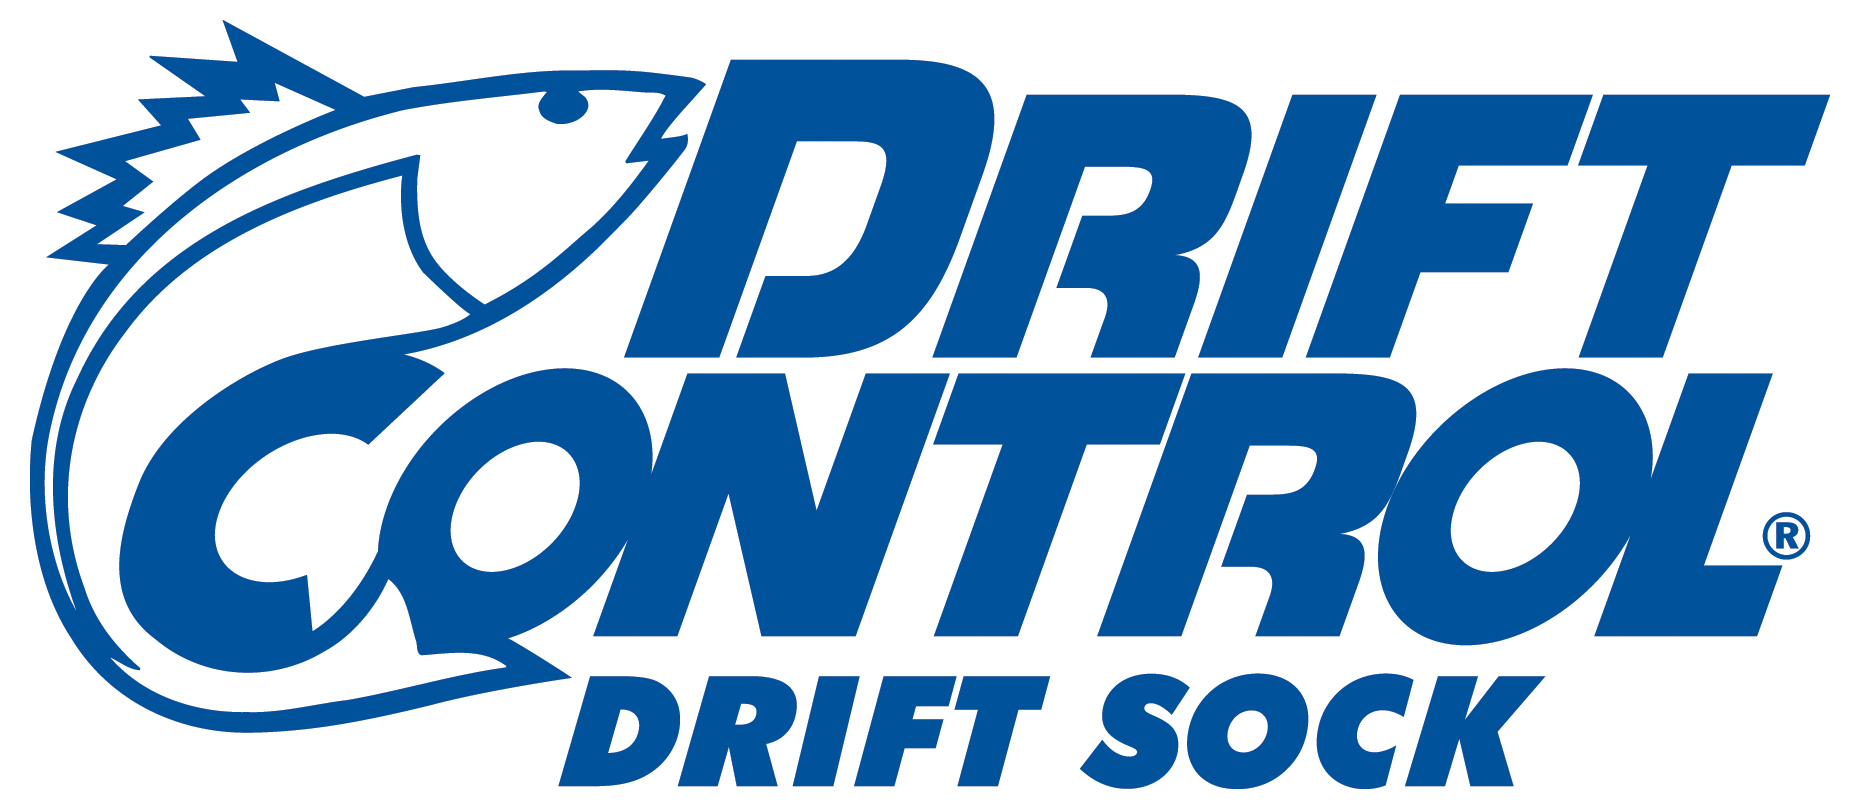 Drift Control Press Releases